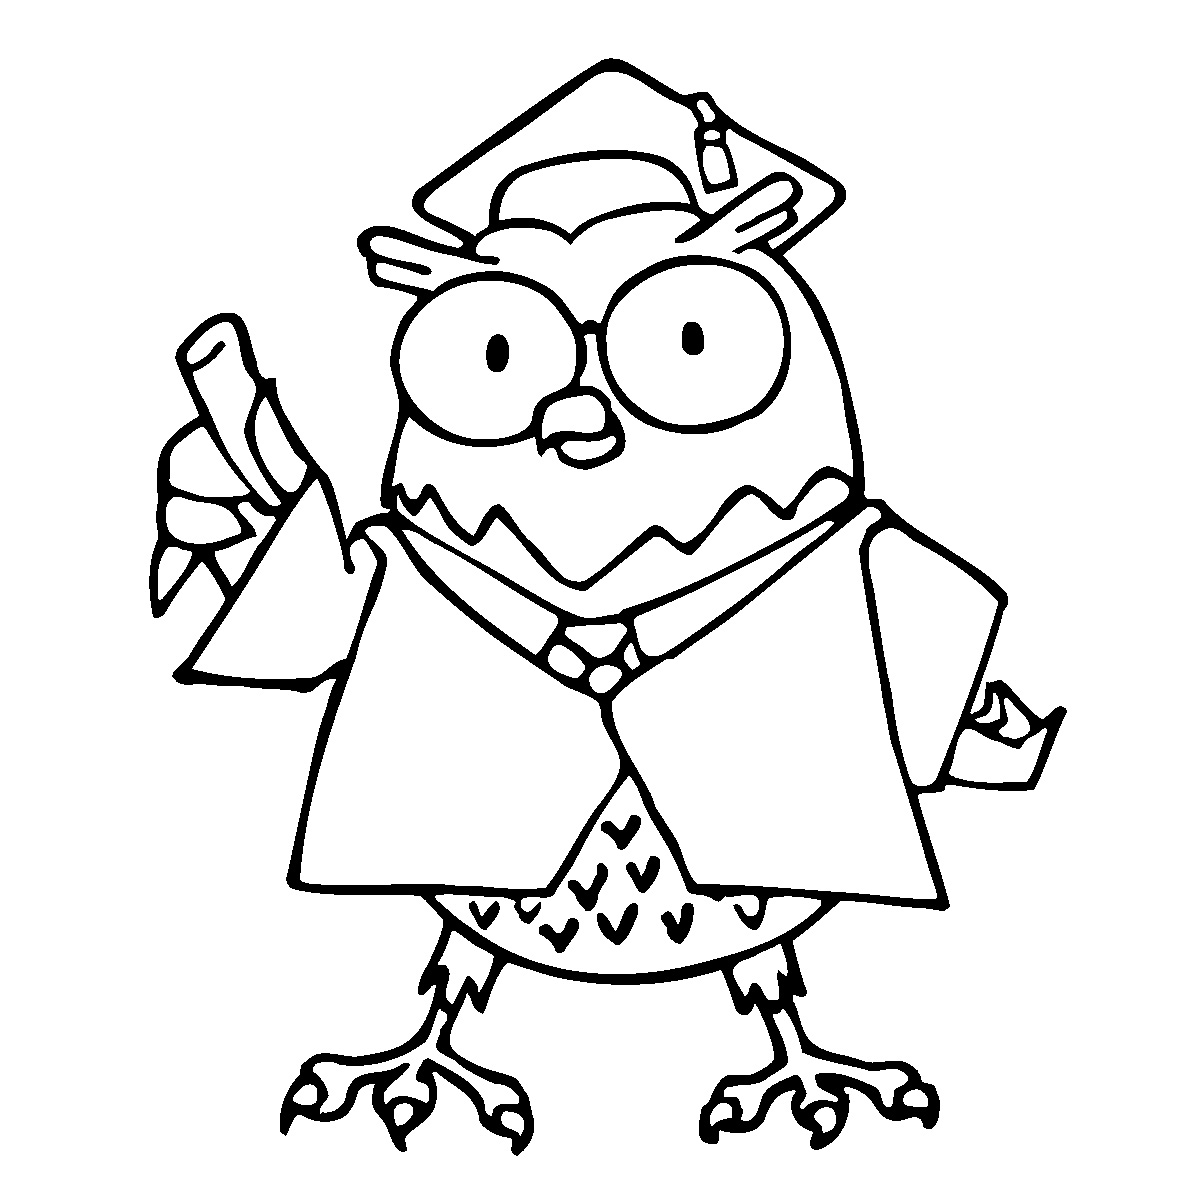 free black and white clipart for teachers - photo #26